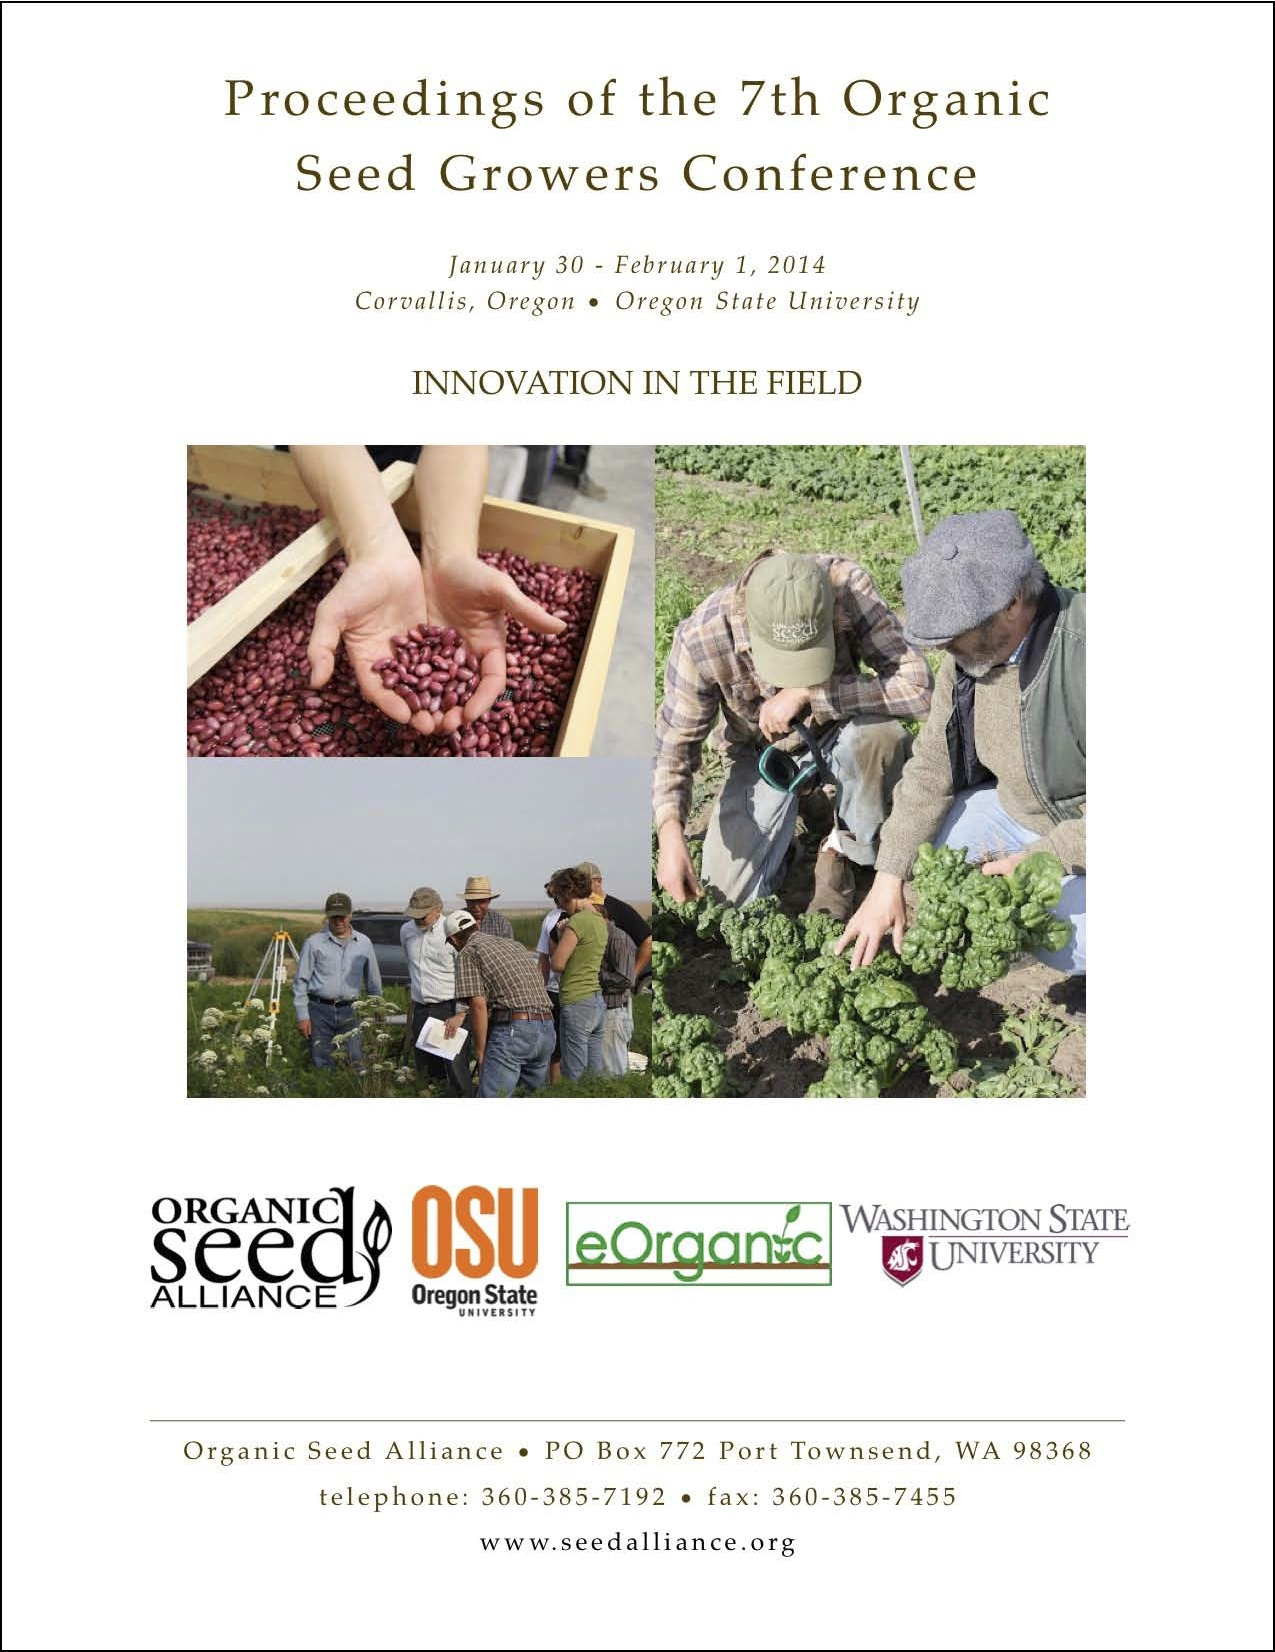 Proceedings From The 7th Organic Seed Growers Conference